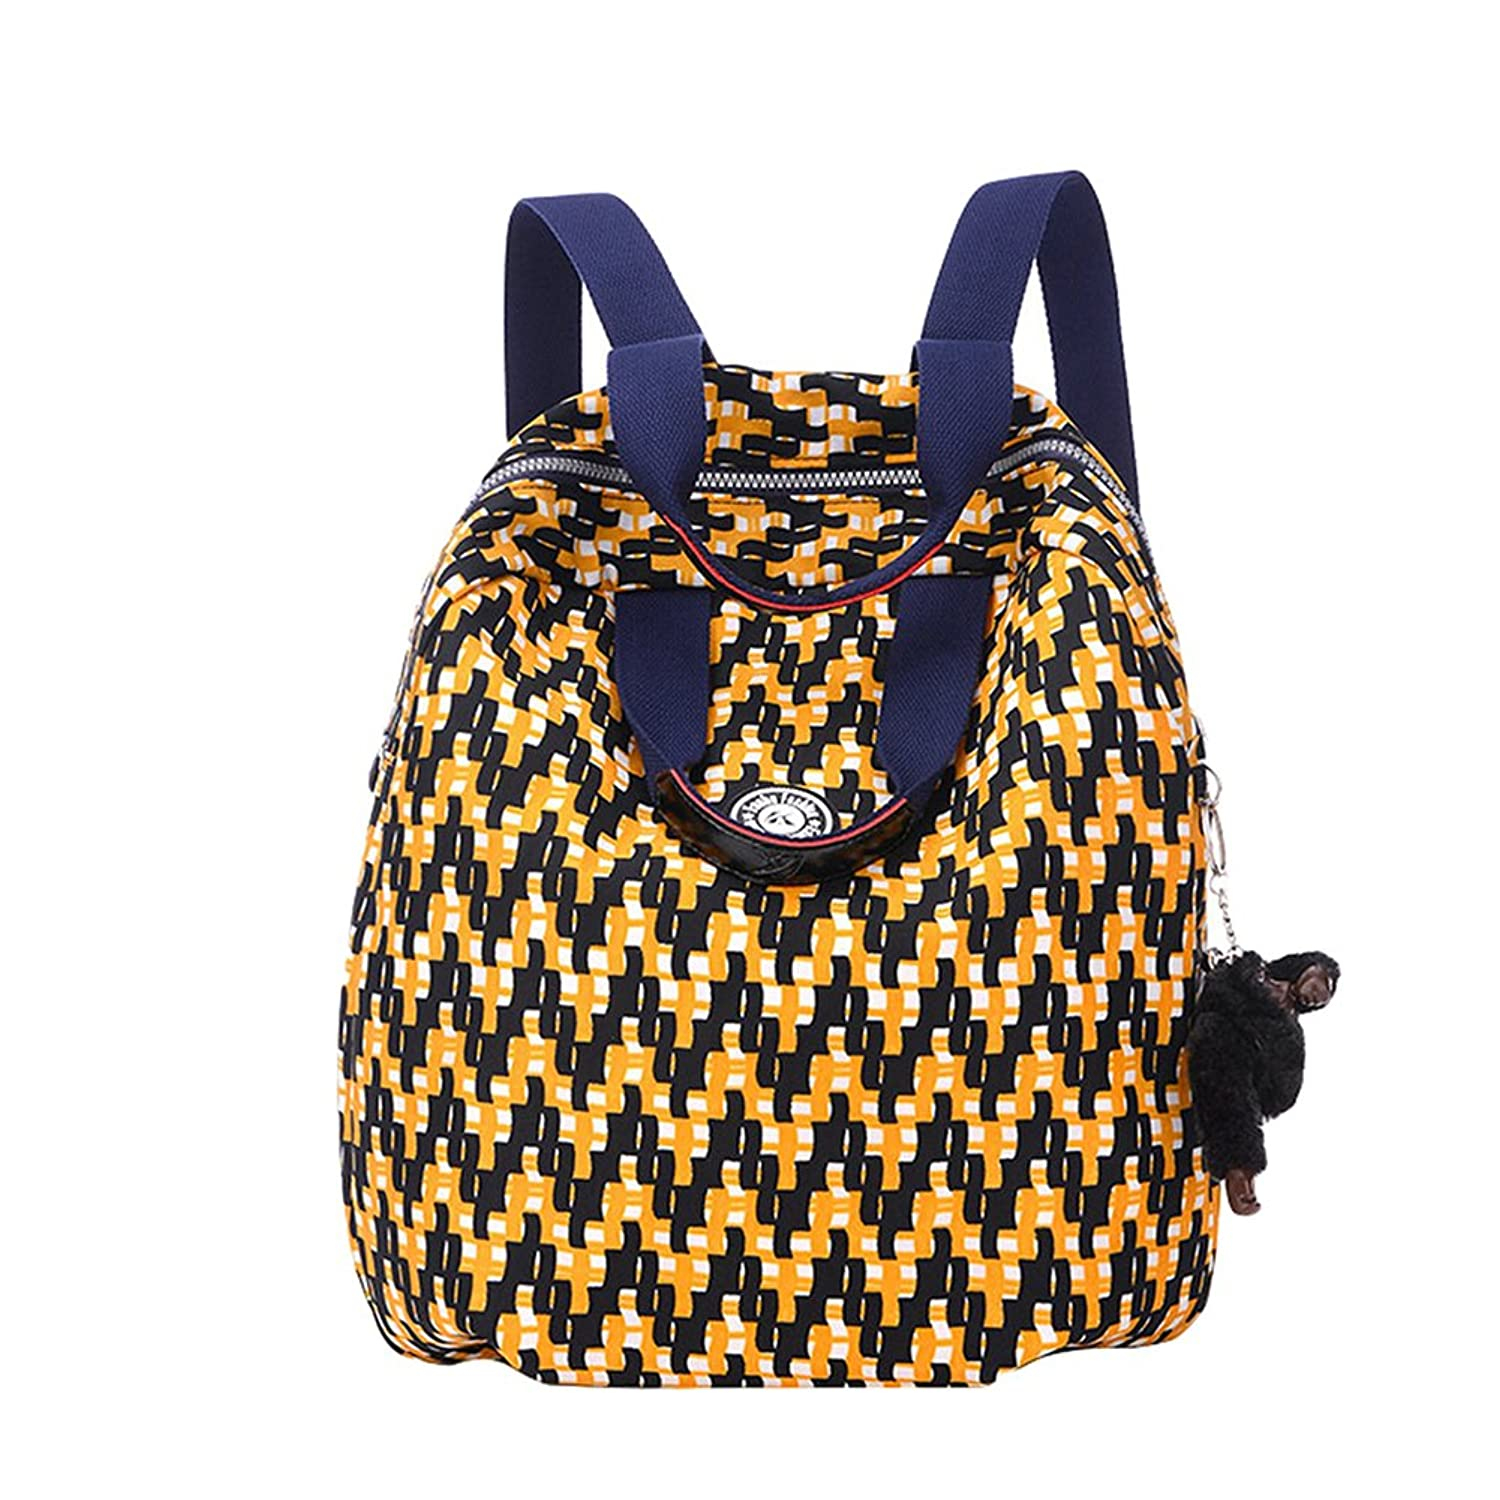 Oncefirst Cute Lightweight Casual Backpack Daypack